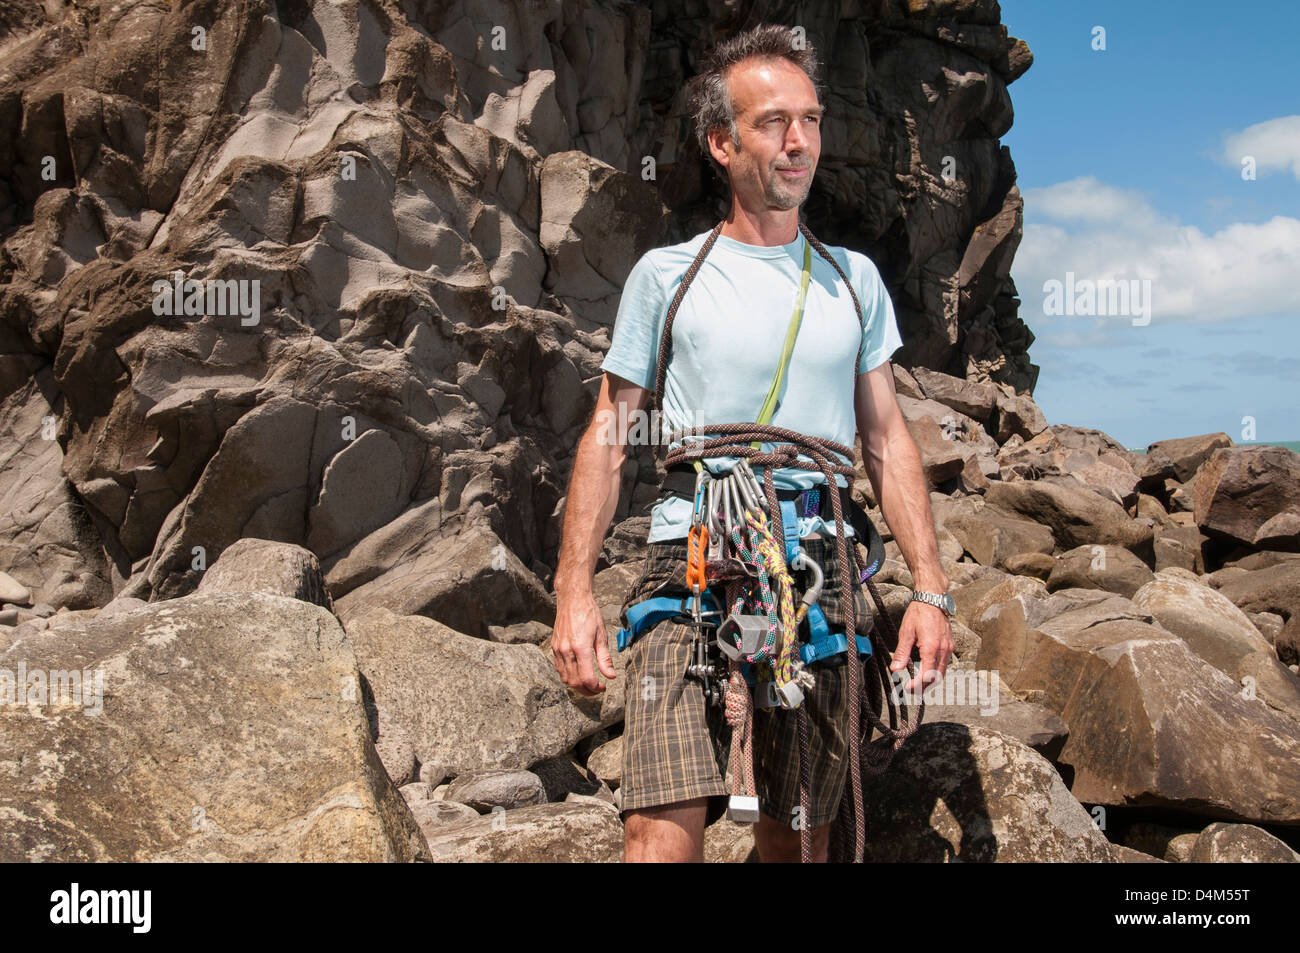 Rock climber wearing clips and ropes - Stock Image